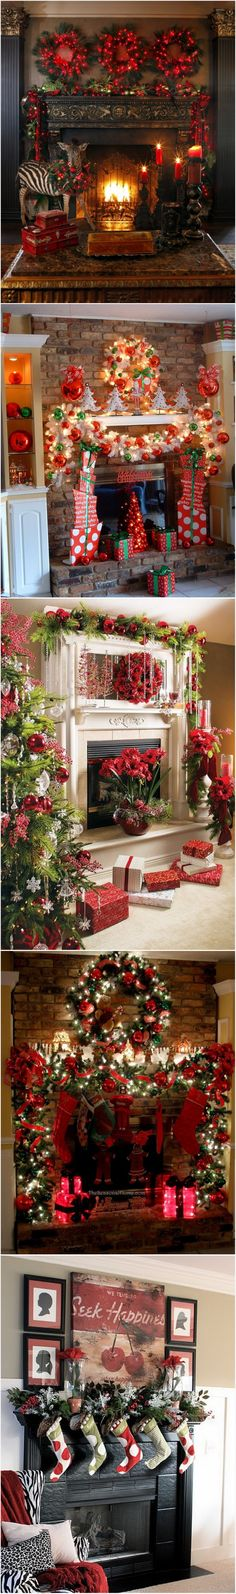 Gorgeously decorated Christmas Mantel inspiration